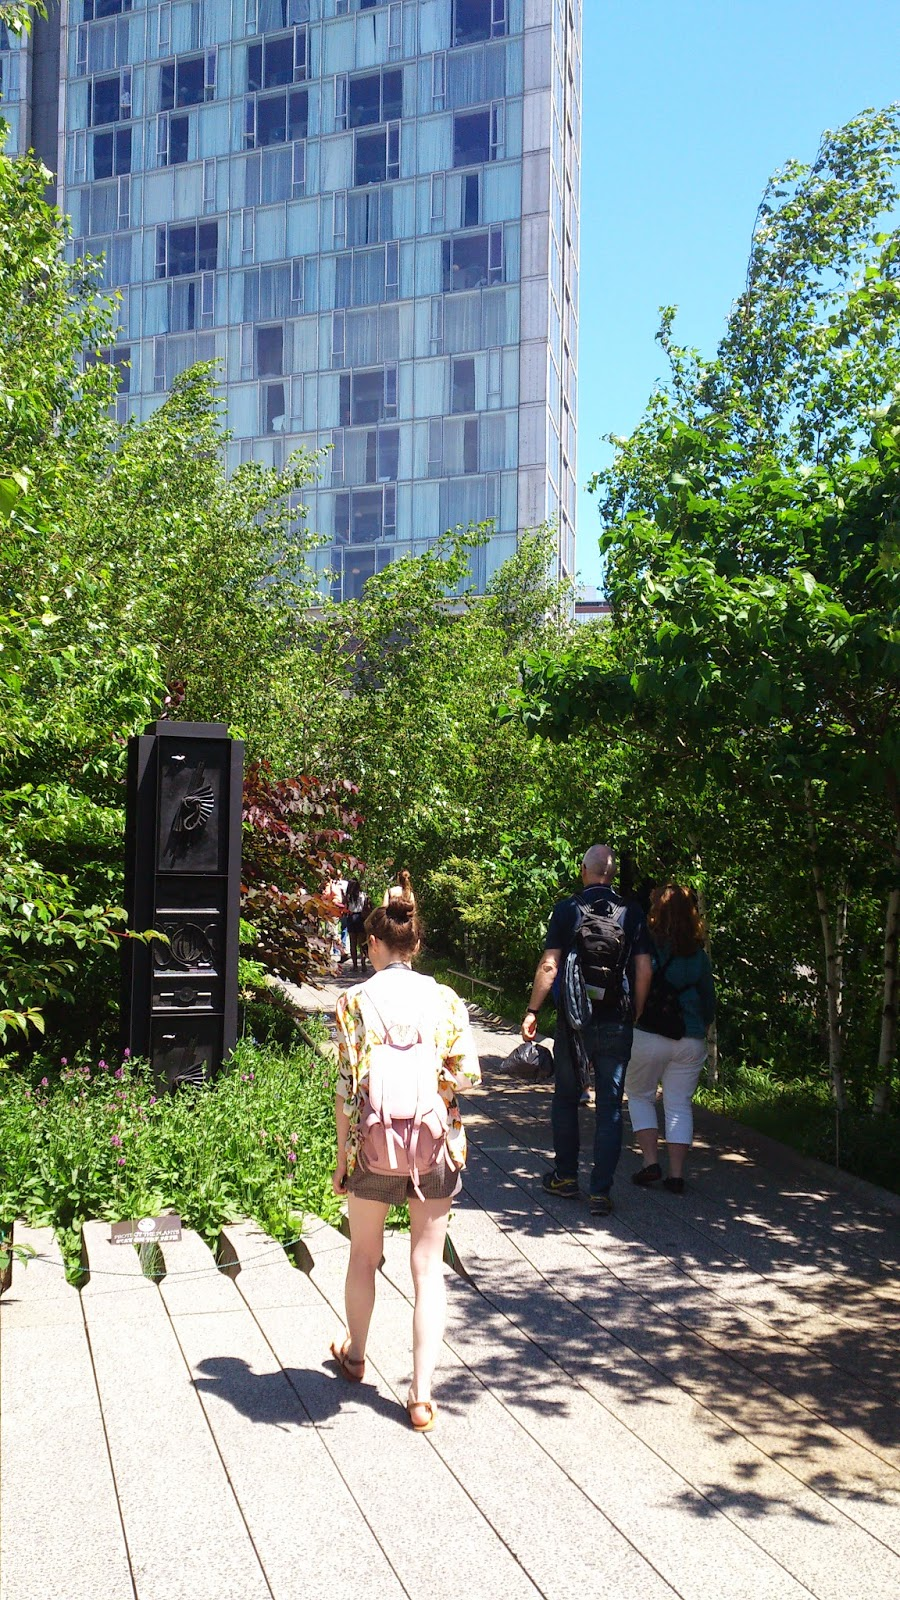 new york city high line trees and nature in city girl tourist in city